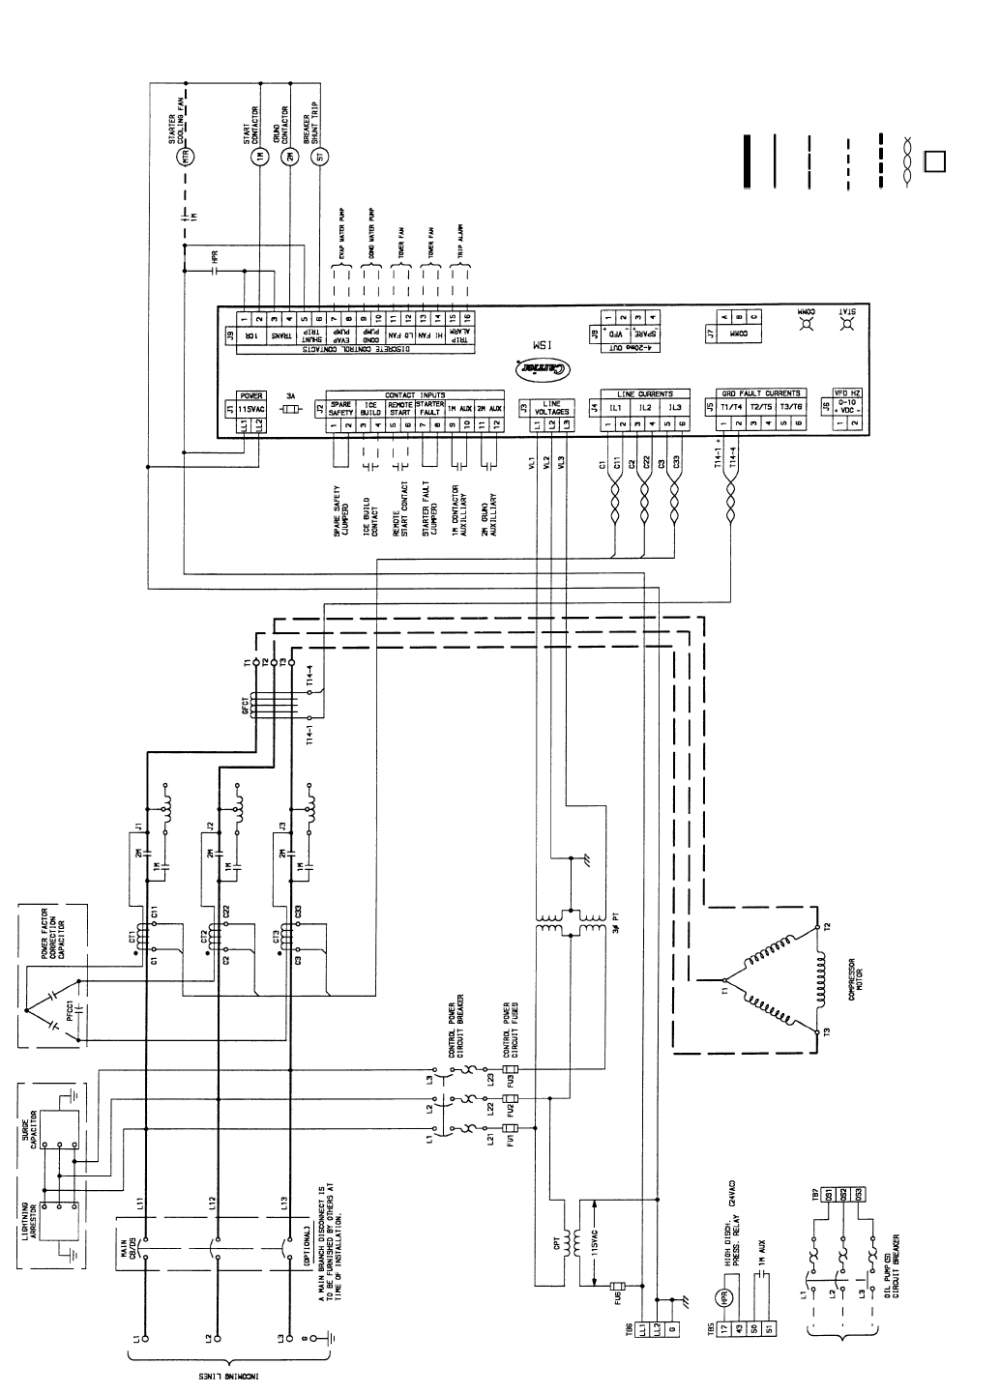 medium resolution of carrier 19xr xrv fig 55 typical primary reactor starter wiring schematic medium voltage